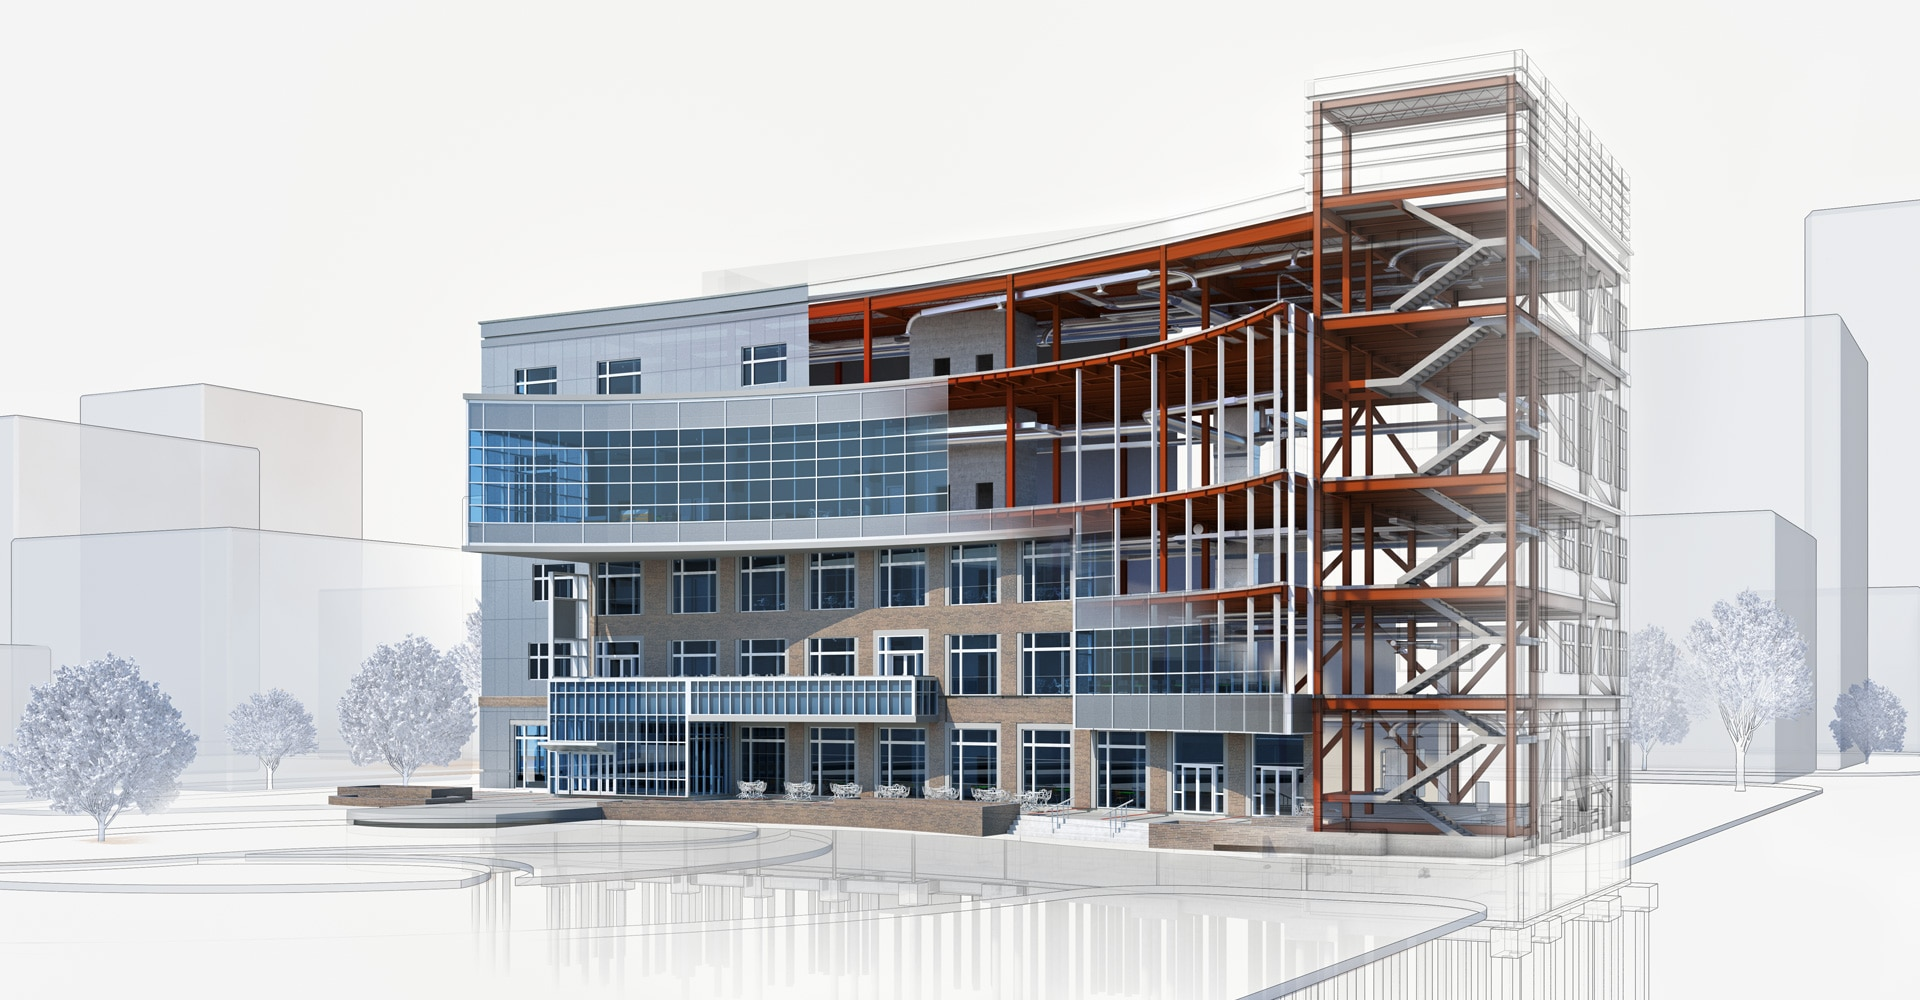 Bim Software For Mep Engineering Design Autodesk